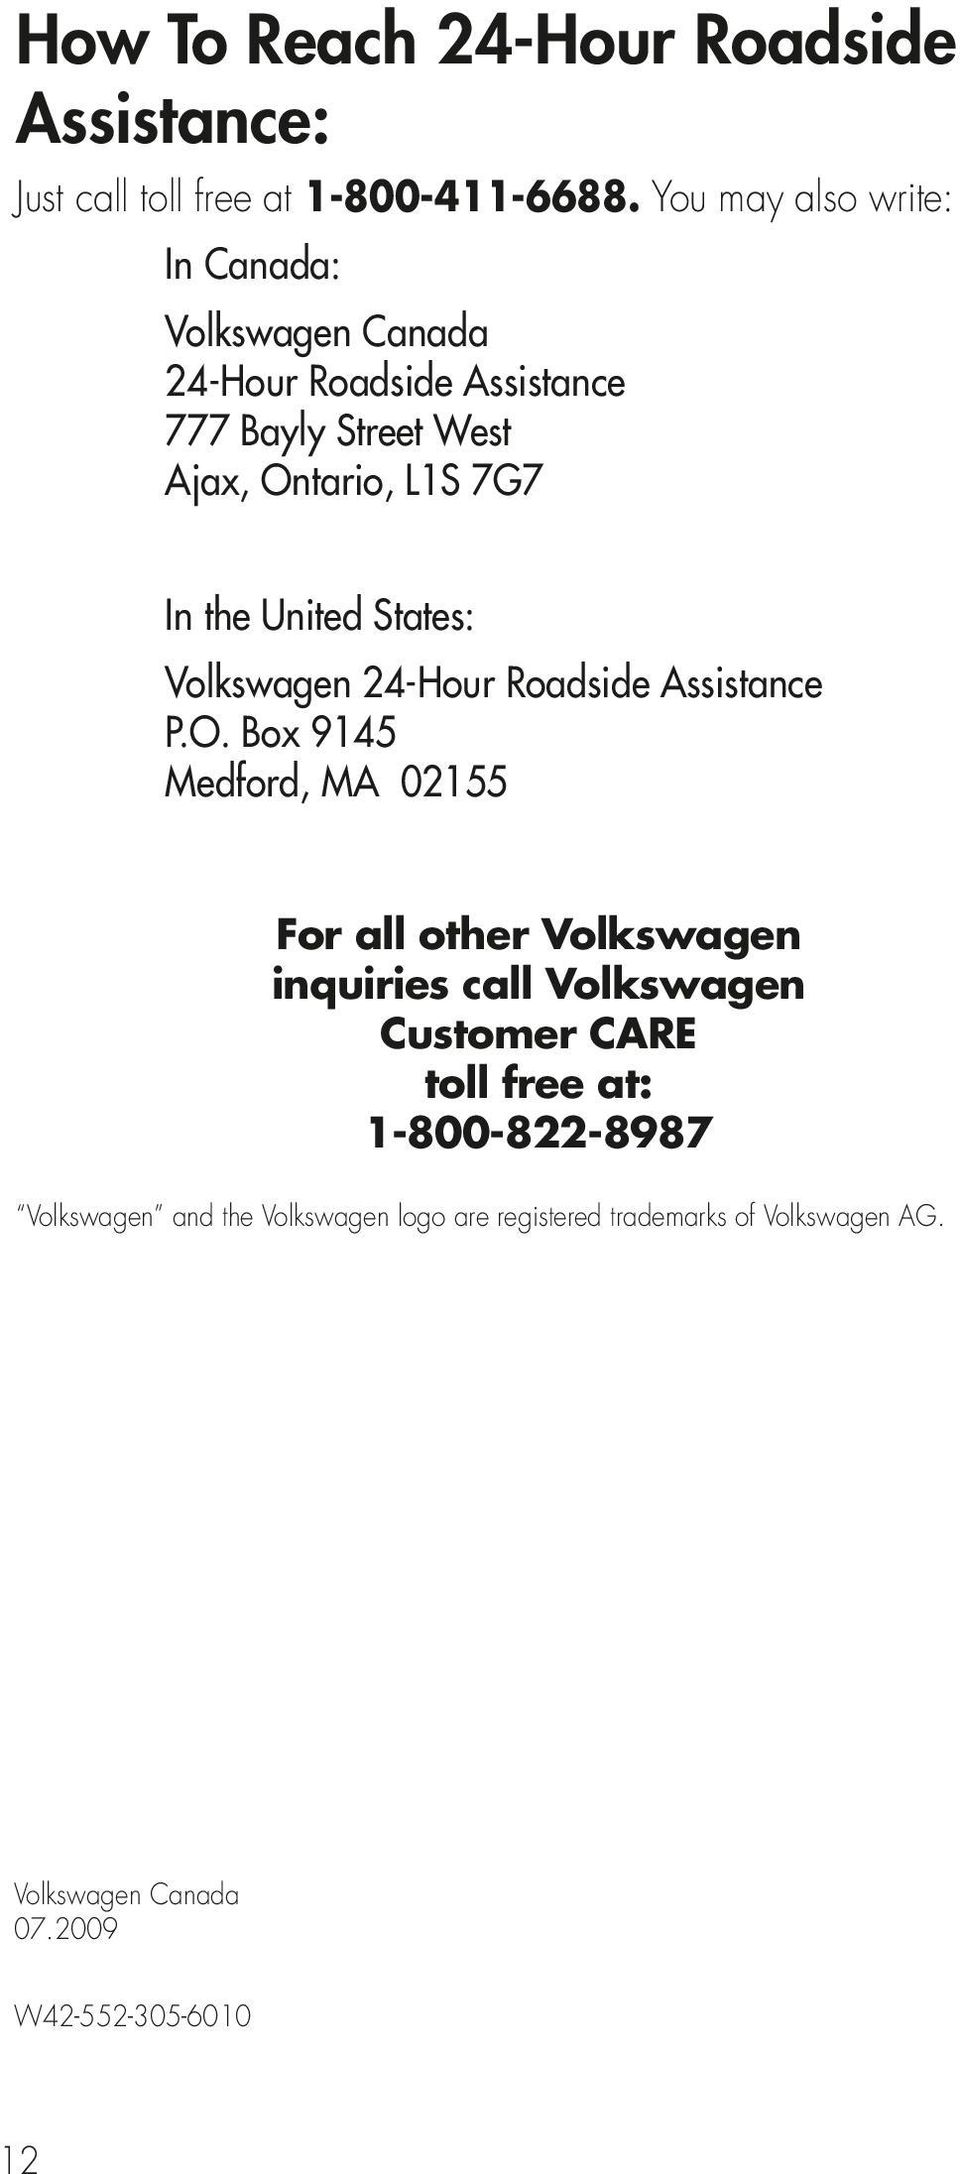 United States: Volkswagen 24-Hour Roadside Assistance P.O.